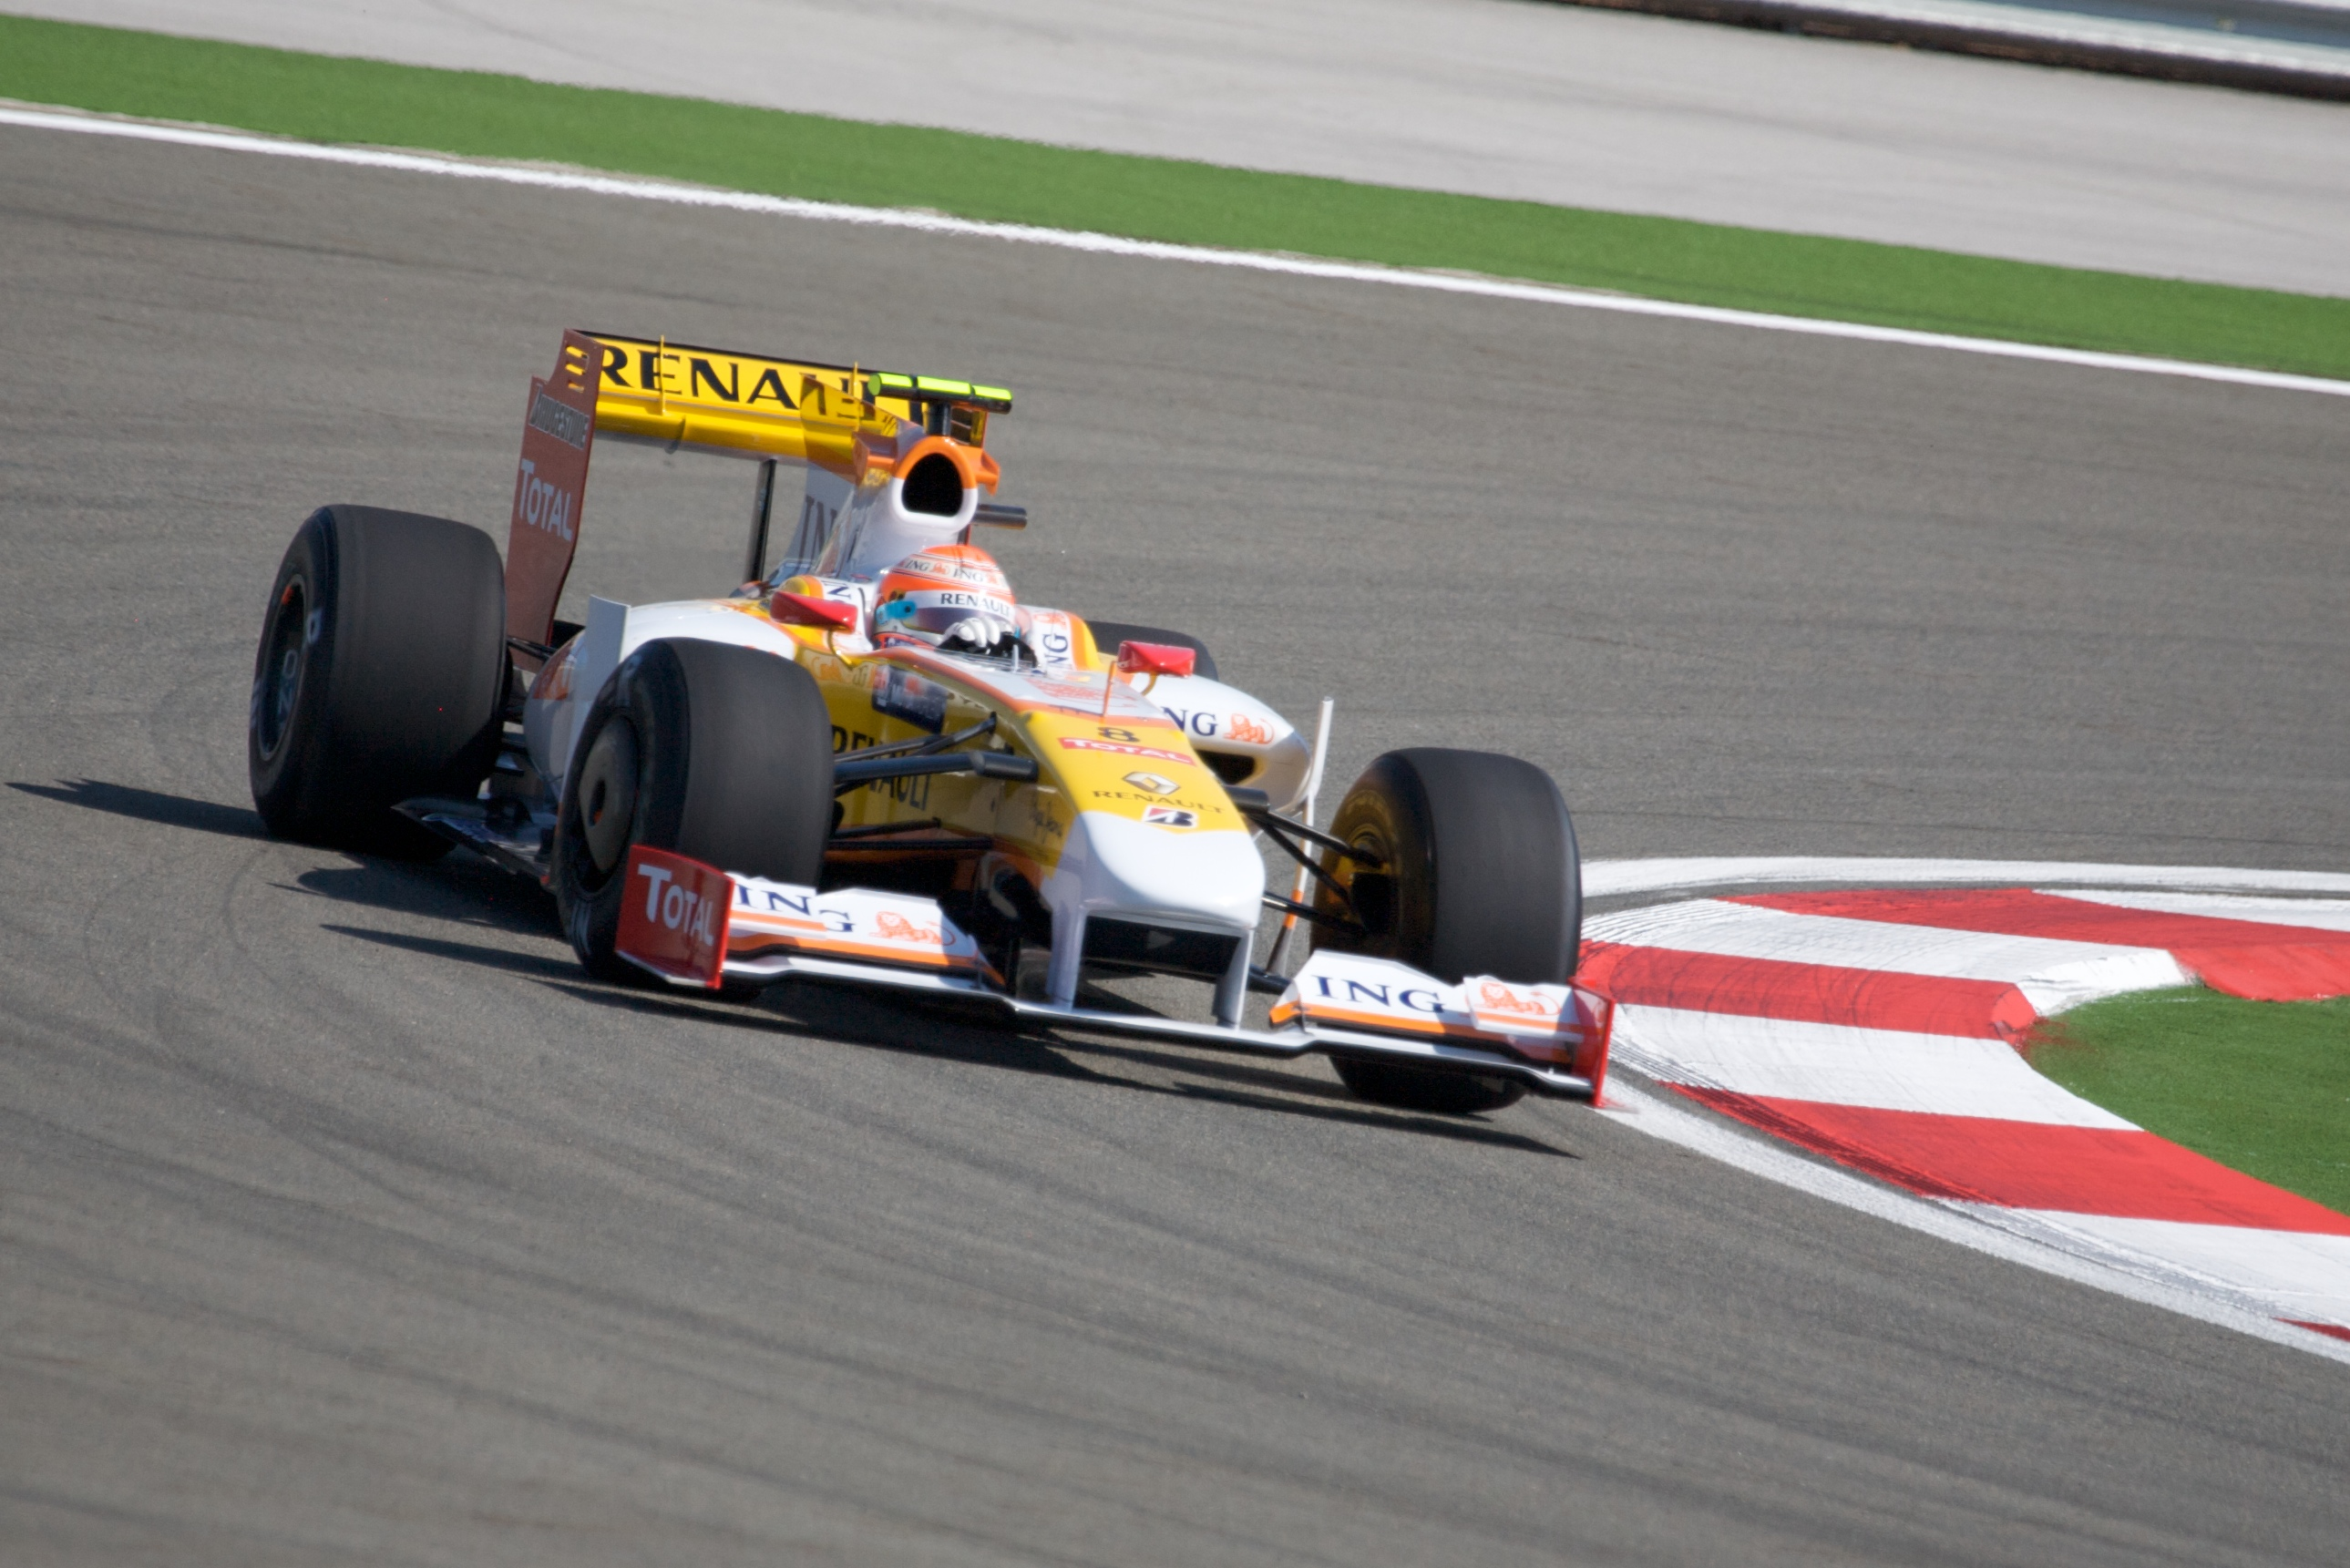 Nelson_Piquet_2009_Turkey.jpg